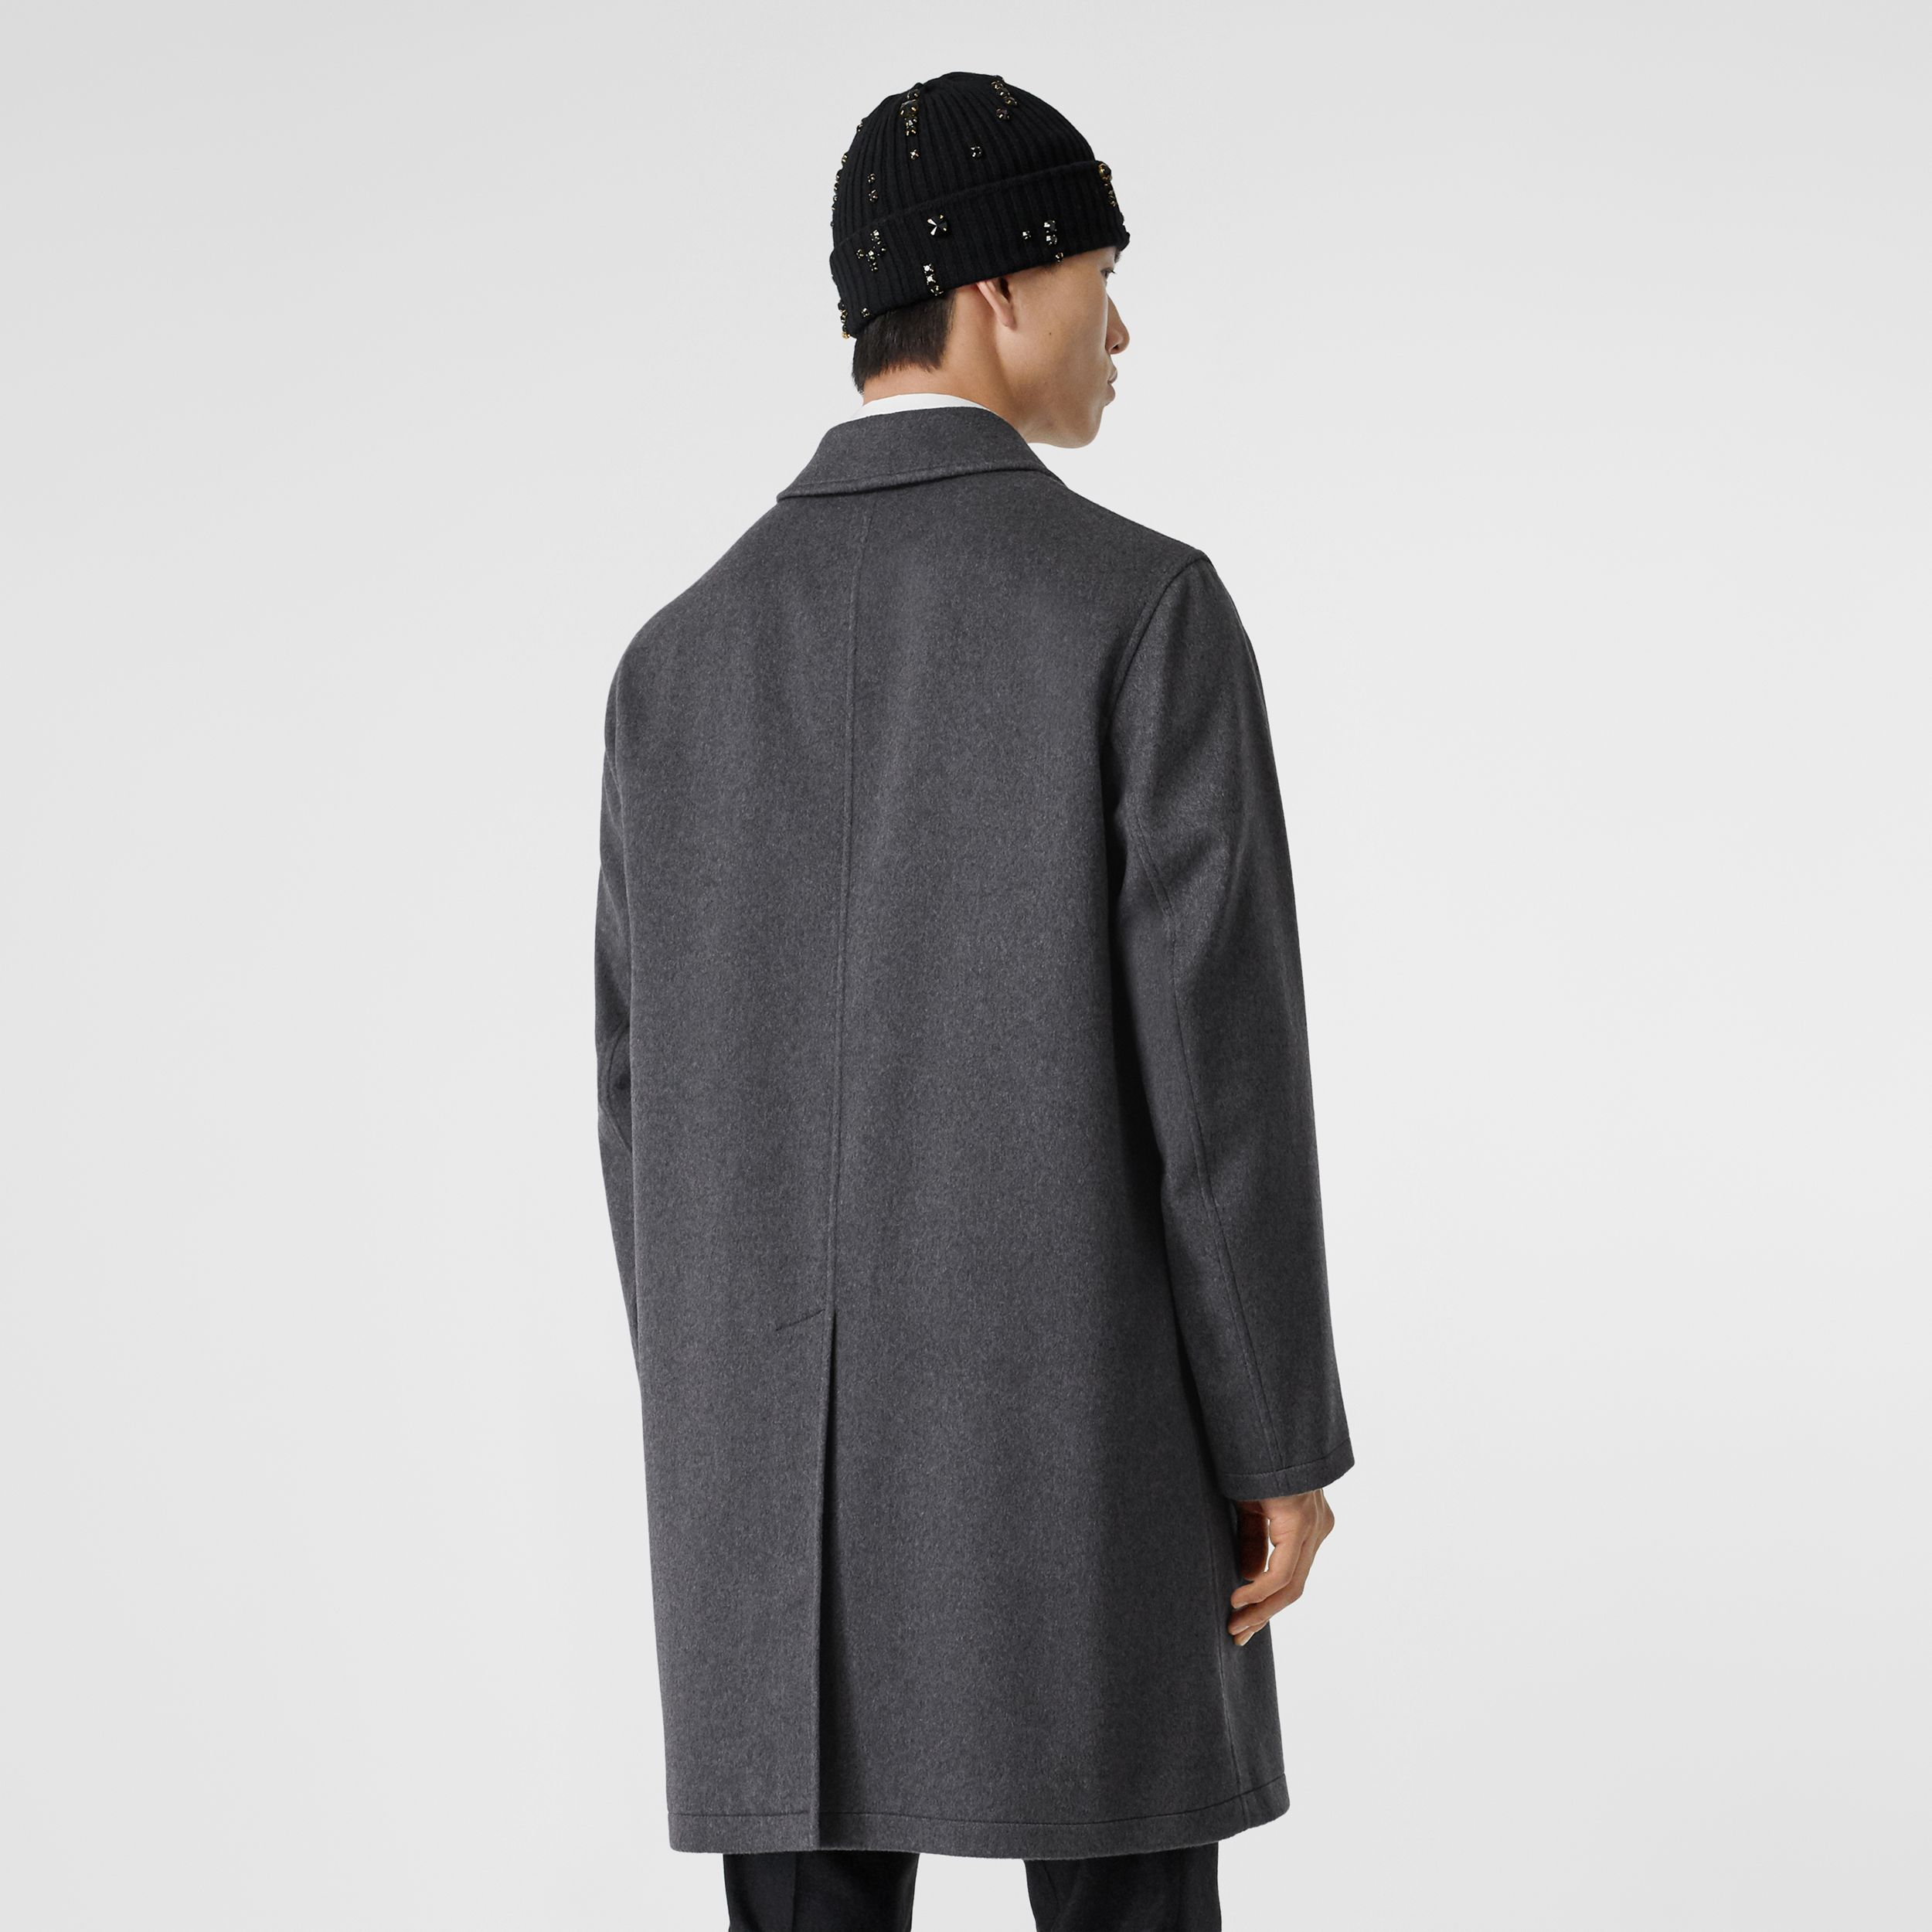 Cashmere Car Coat in Pewter Melange - Men | Burberry - 3